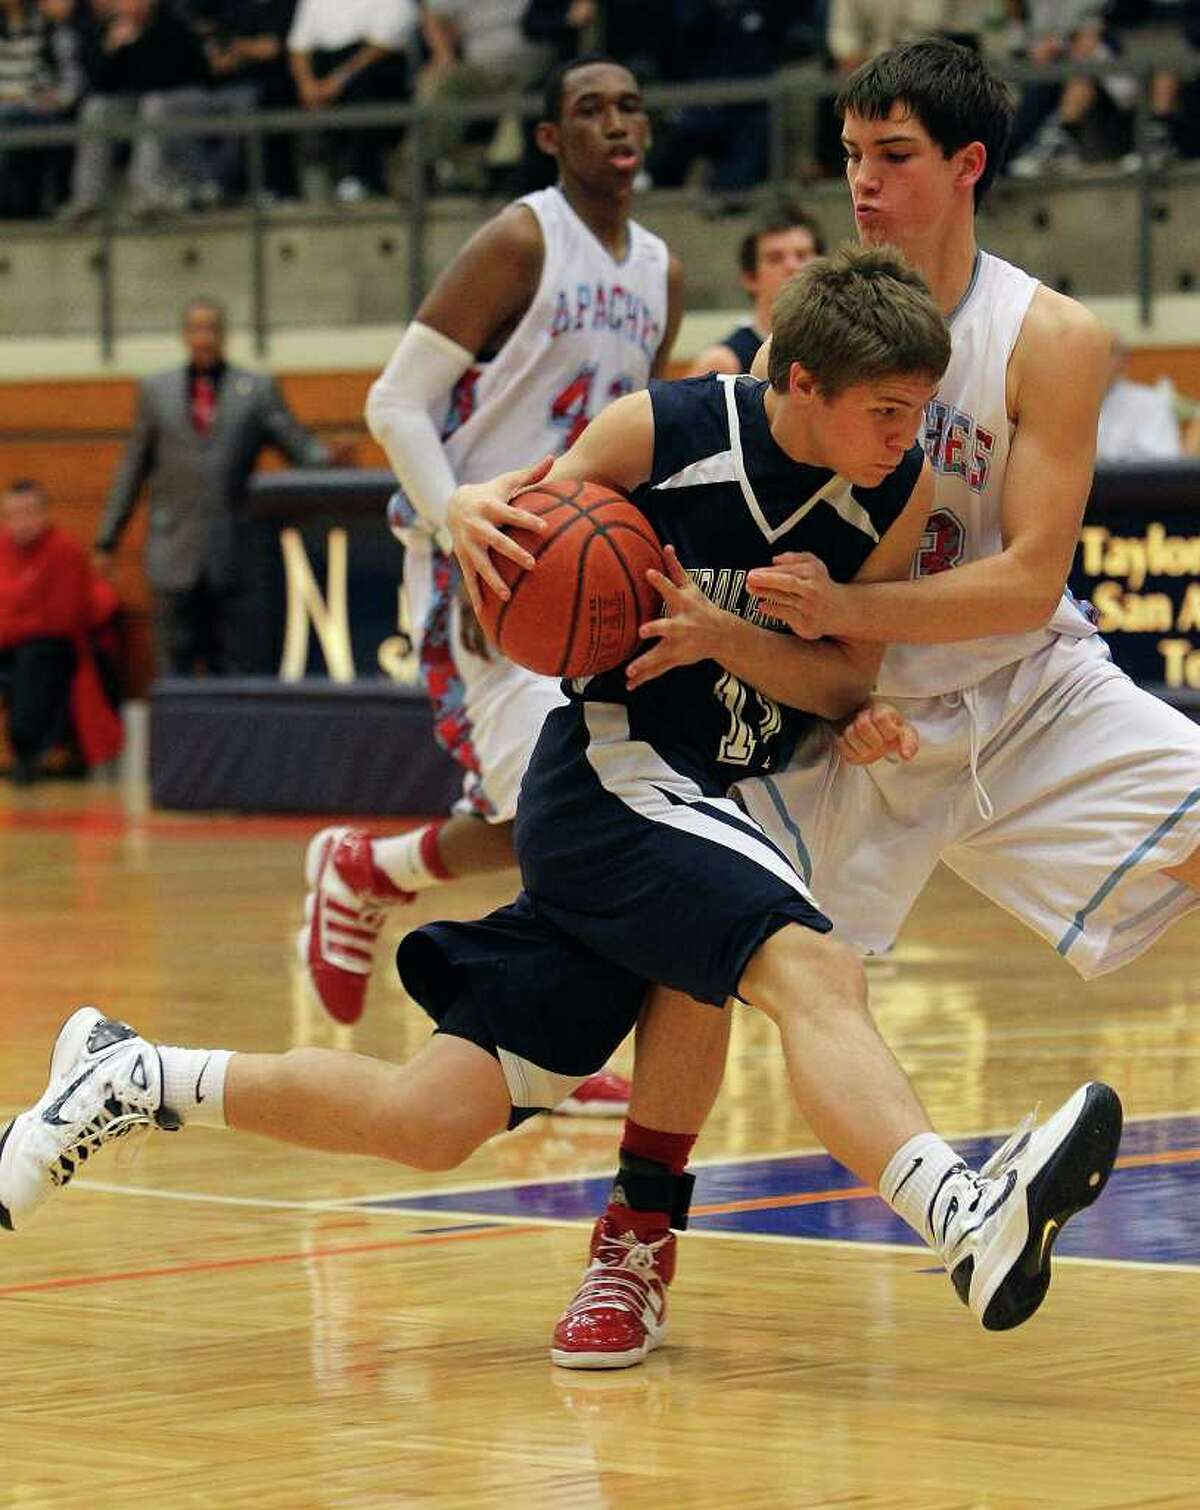 Central Catholic's Collin Fabac (11) drives to basket against Antonian's Mike Boyd (23) in boys basketball at Taylor Fieldhouse on Wednesday, Jan. 12, 2011. Central Catholic defeated Antonian 64-54. Kin Man Hui/kmhui@express-news.net